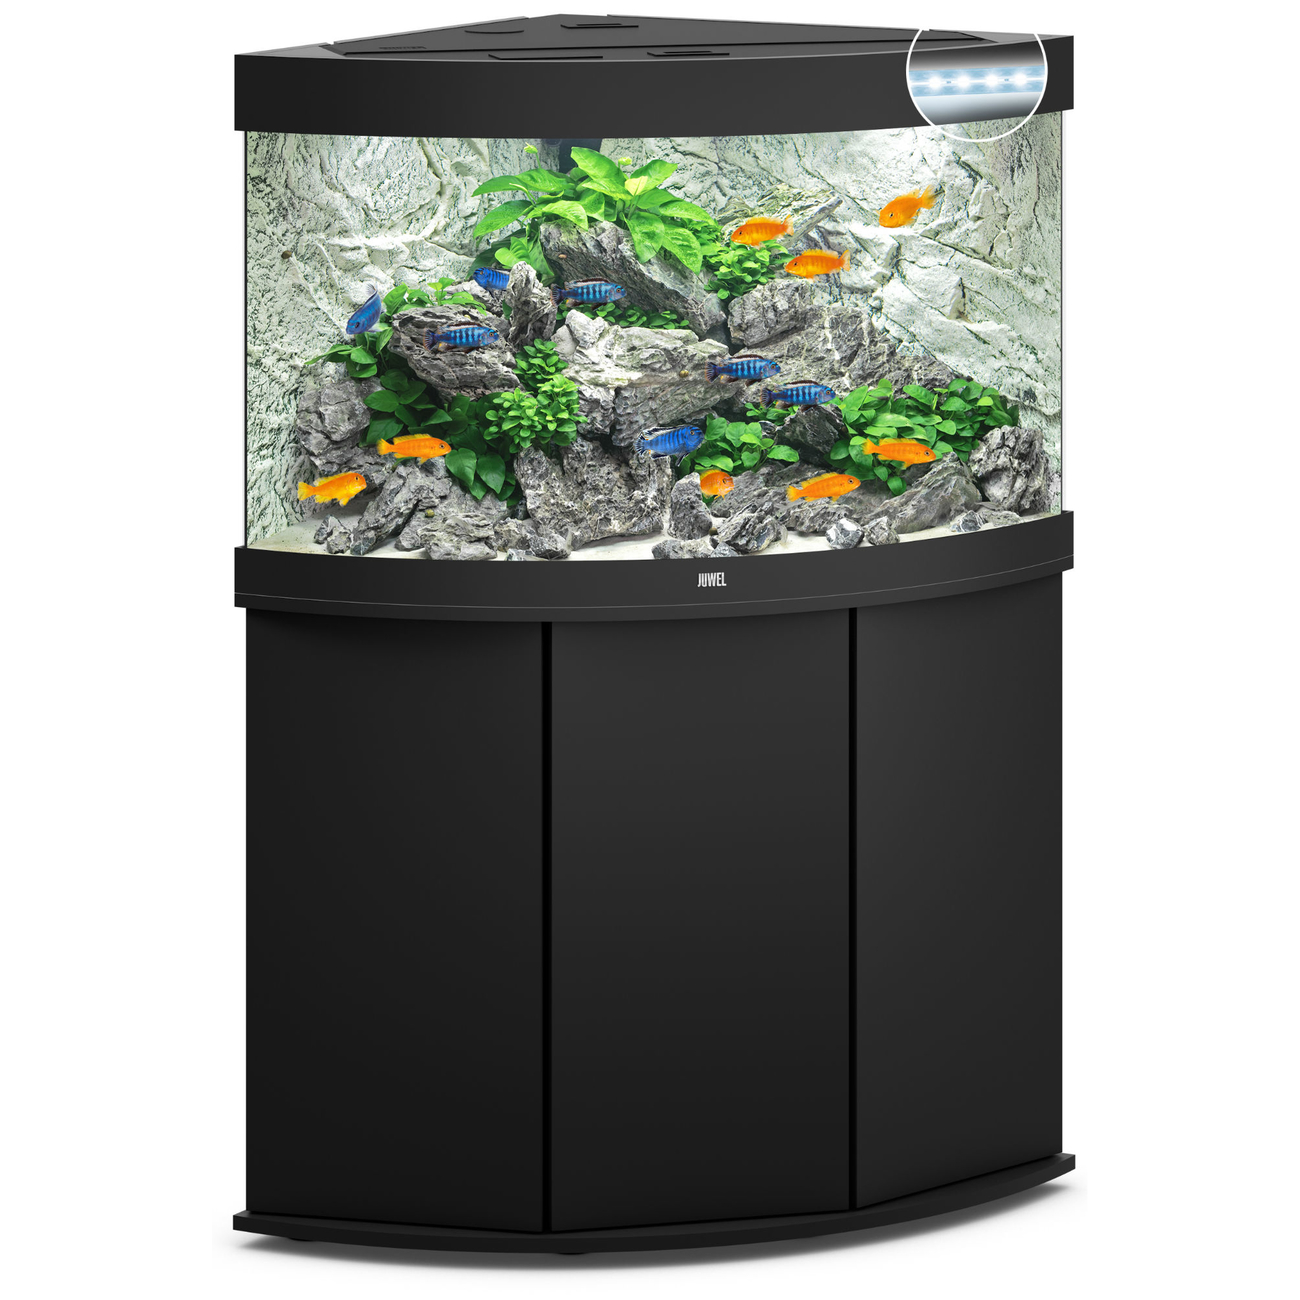 juwel trigon 190 led eck aquarium mit unterschrank von juwel g nstig bestellen. Black Bedroom Furniture Sets. Home Design Ideas